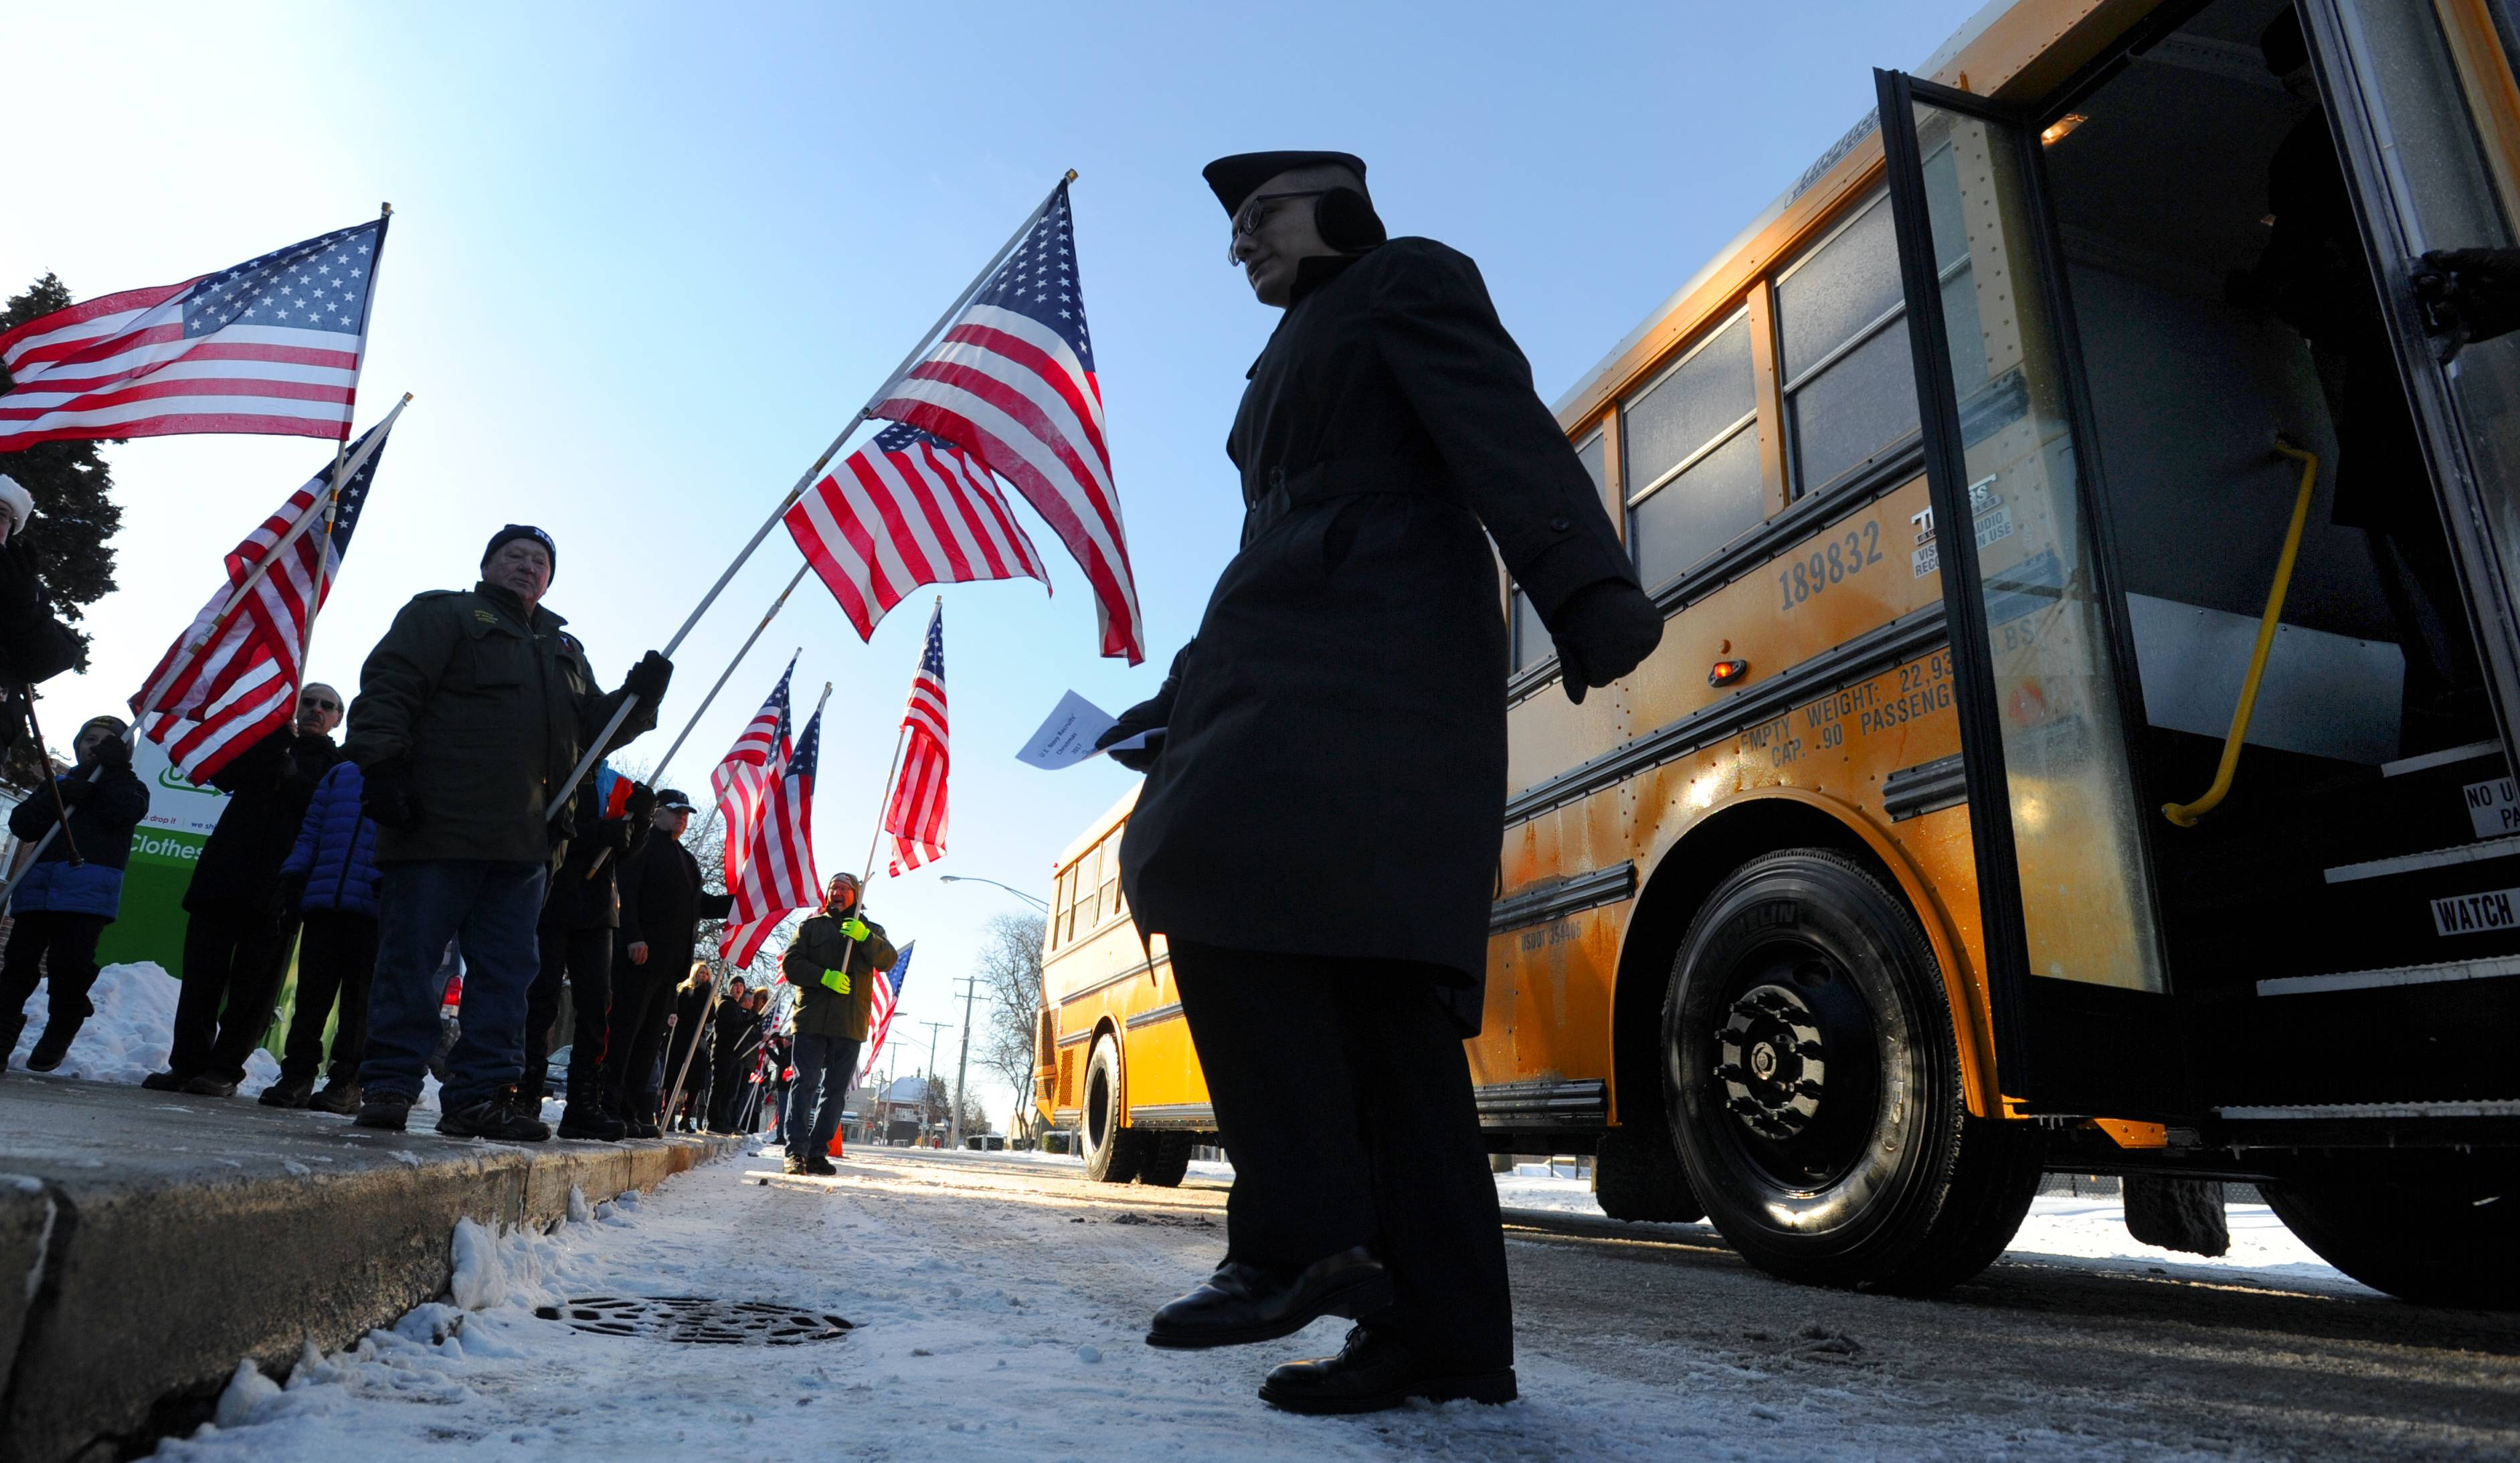 Sailors from Naval Station Great Lakes in North Chicago are welcomed to the U.S. Navy Recruits' Christmas party at Christian Liberty Academy on Christmas morning in Arlington Heights.